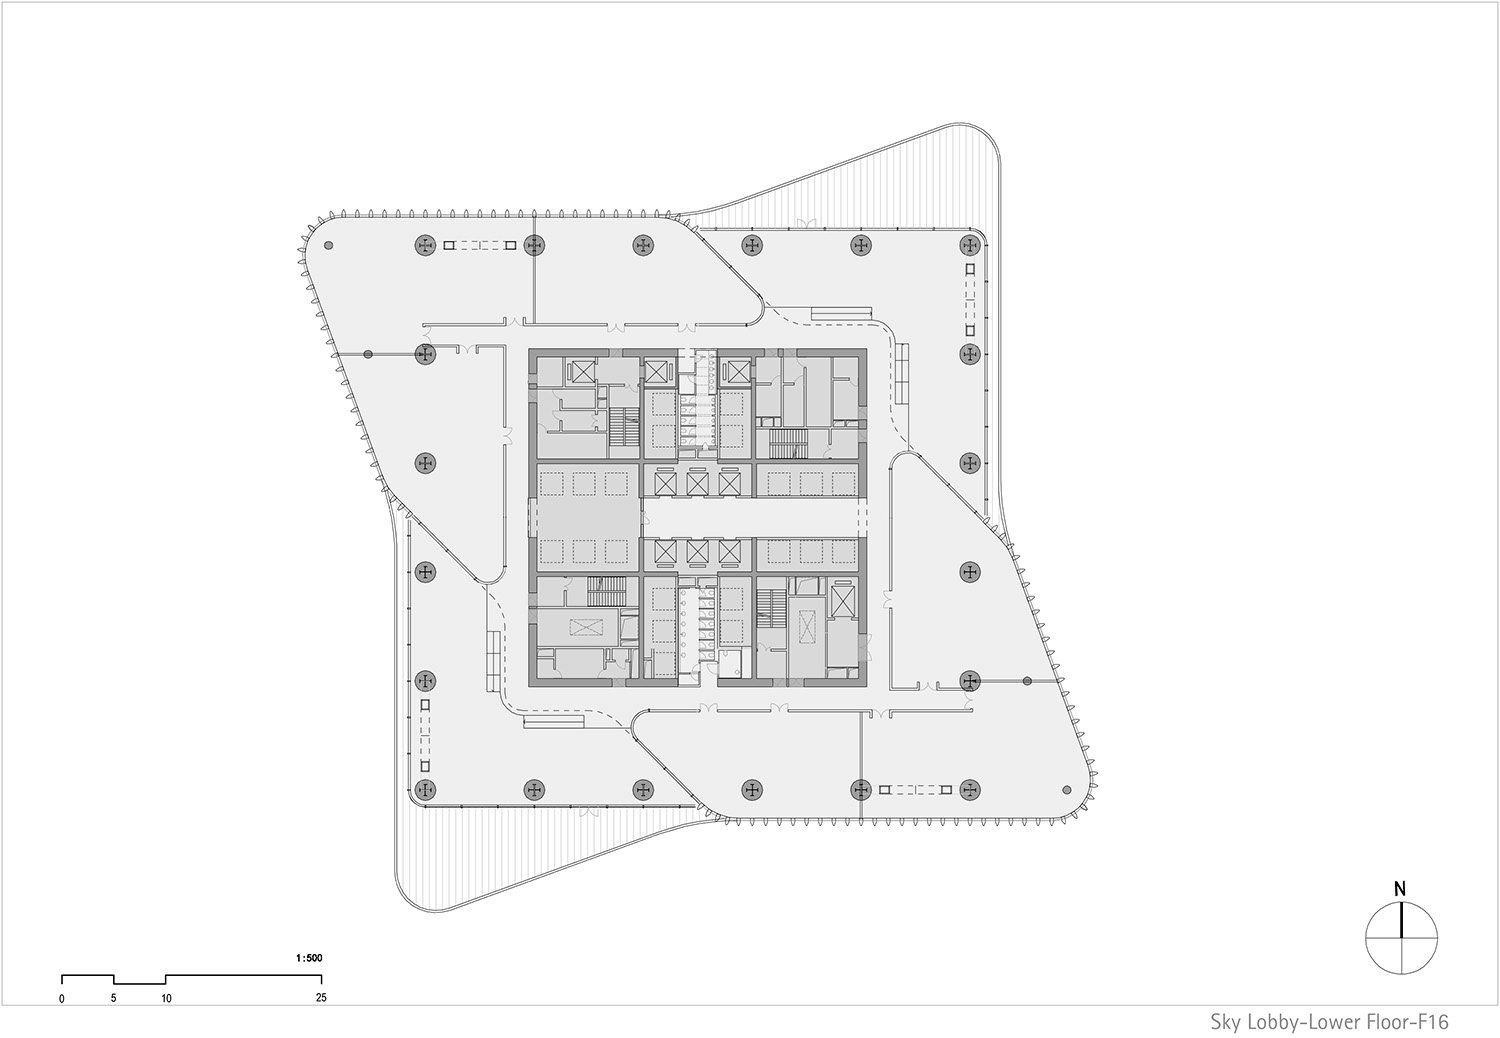 Floor plan north tower, level 16 © gmp Architects}